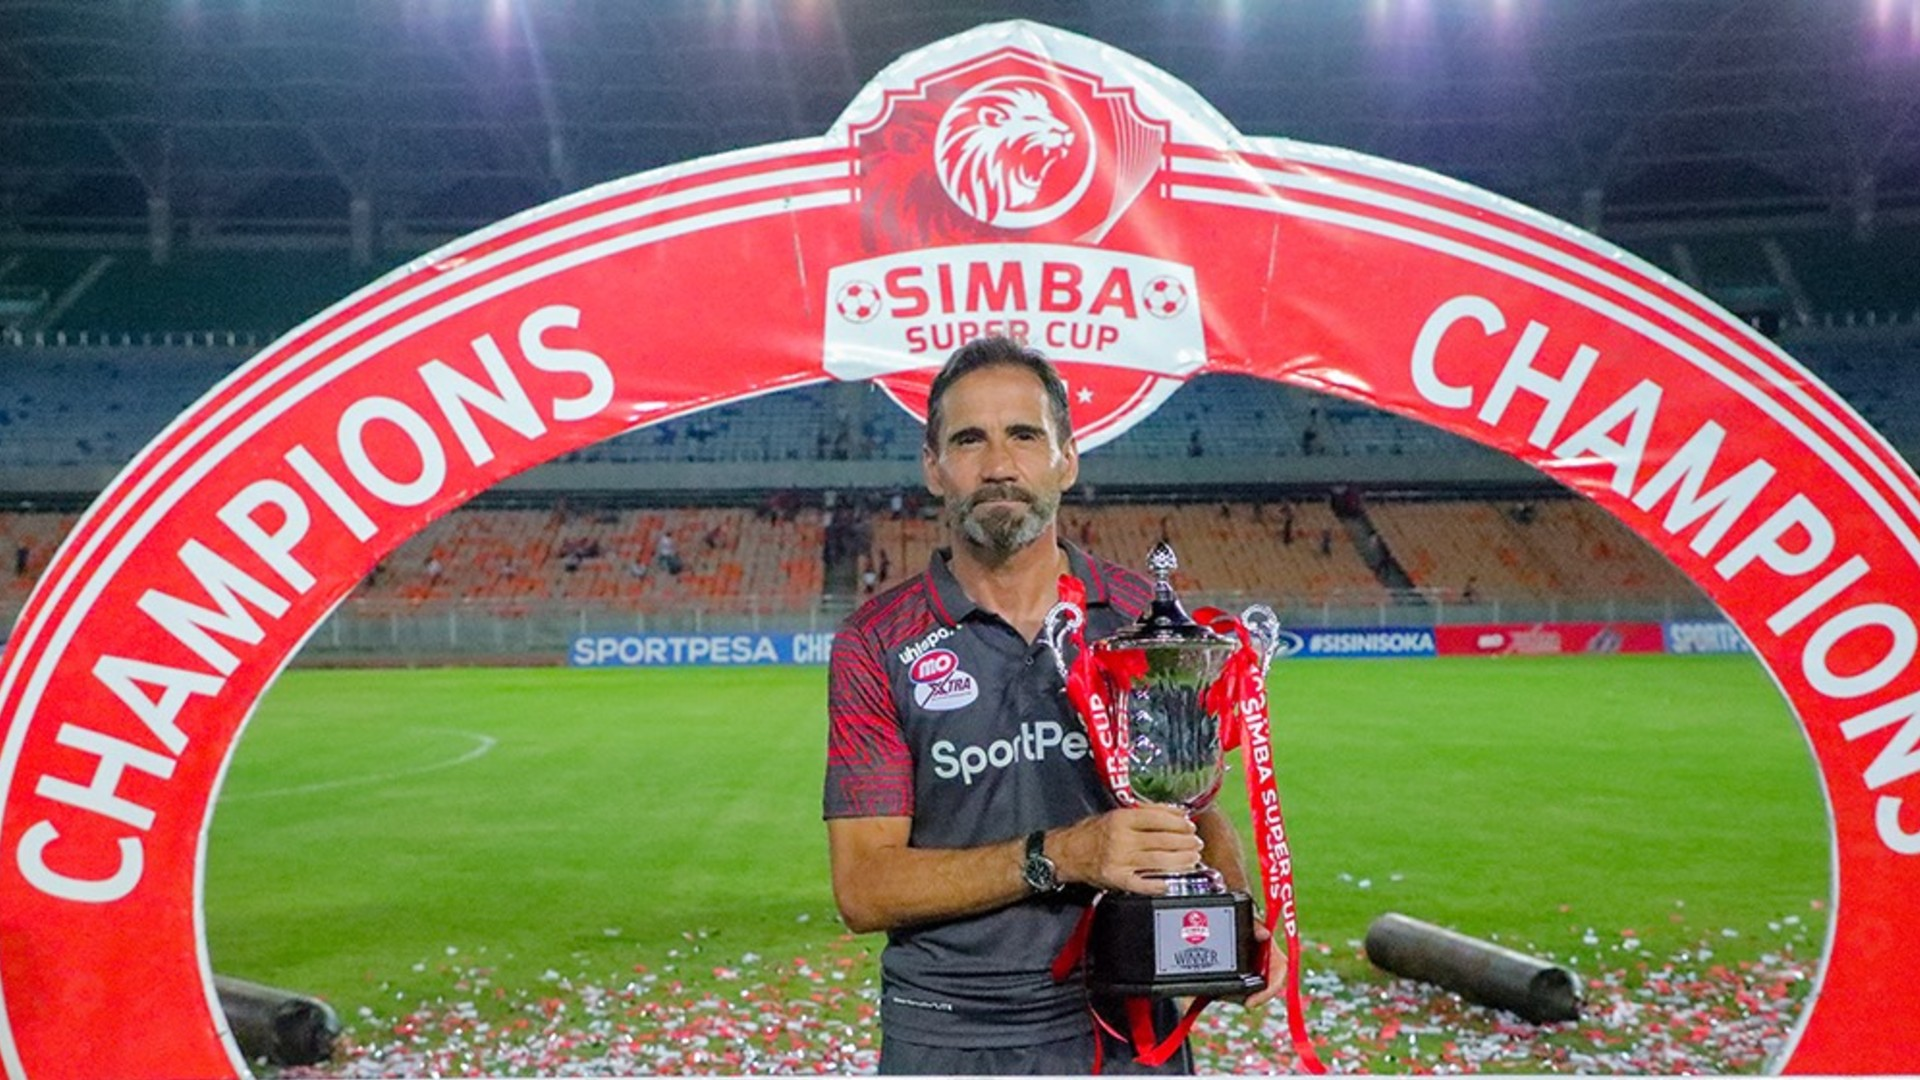 Caf Champions League: Simba SC ready to roar after Super Cup win - Da Rosa